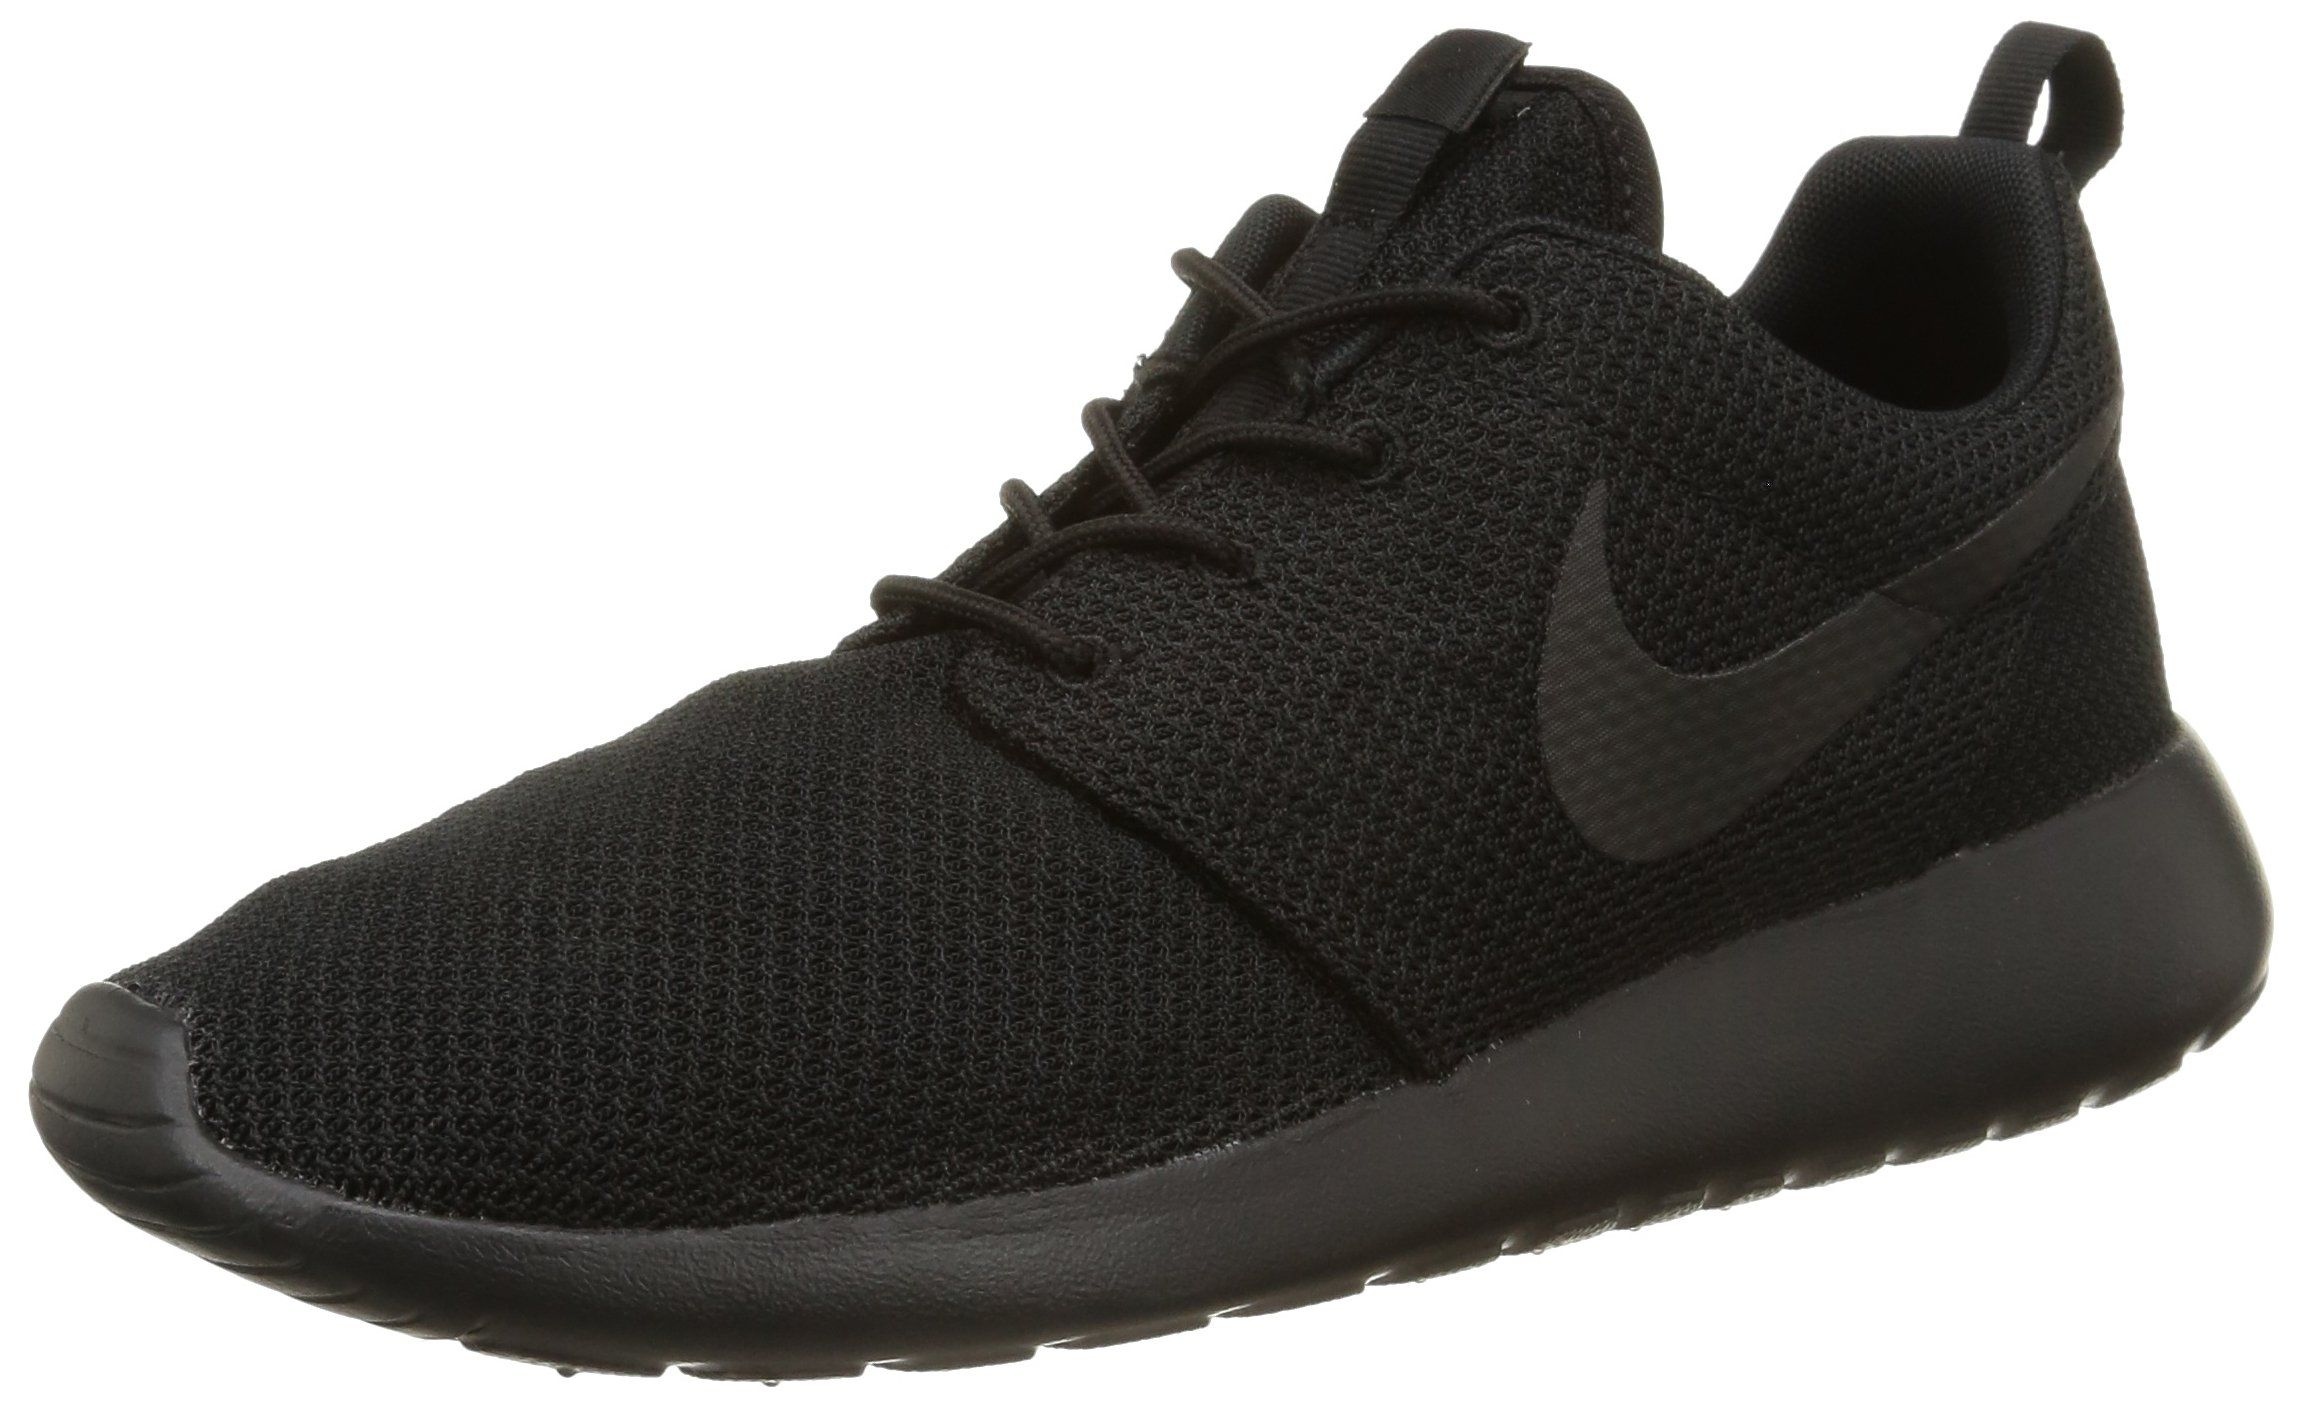 50a765a323b9 NIKE Mens Roshe One Running Shoes Black Black 511881026 Size 10     Click  image for more details.(It is Amazon affiliate link)  BestRunningShoesIdeas